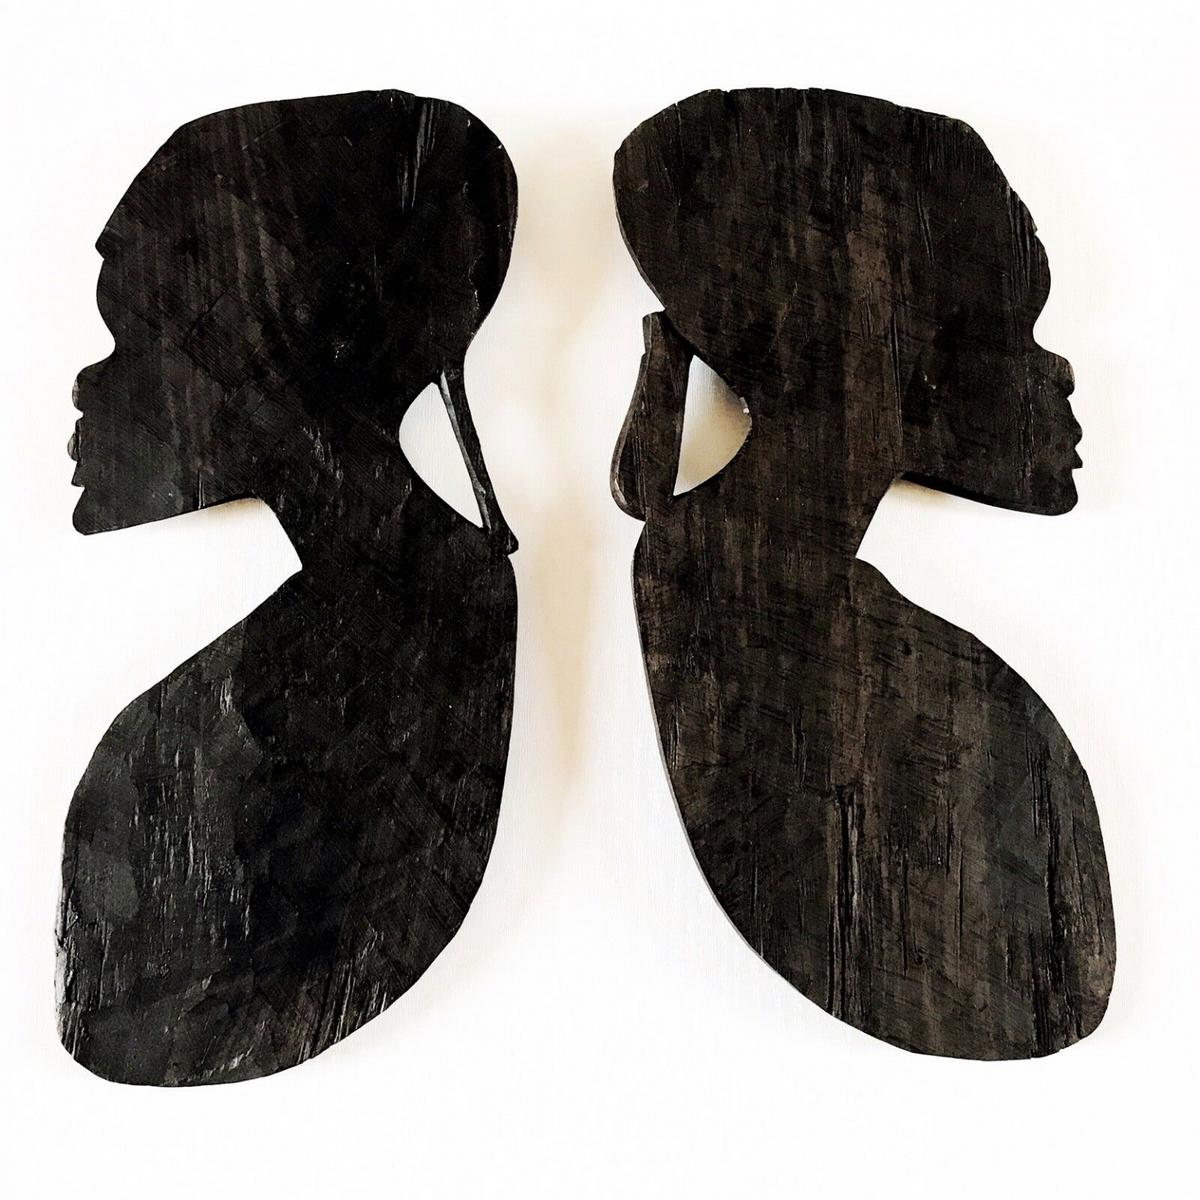 Ebony Wooden Hand Carved Wall Decor In Me15 Maidstone For